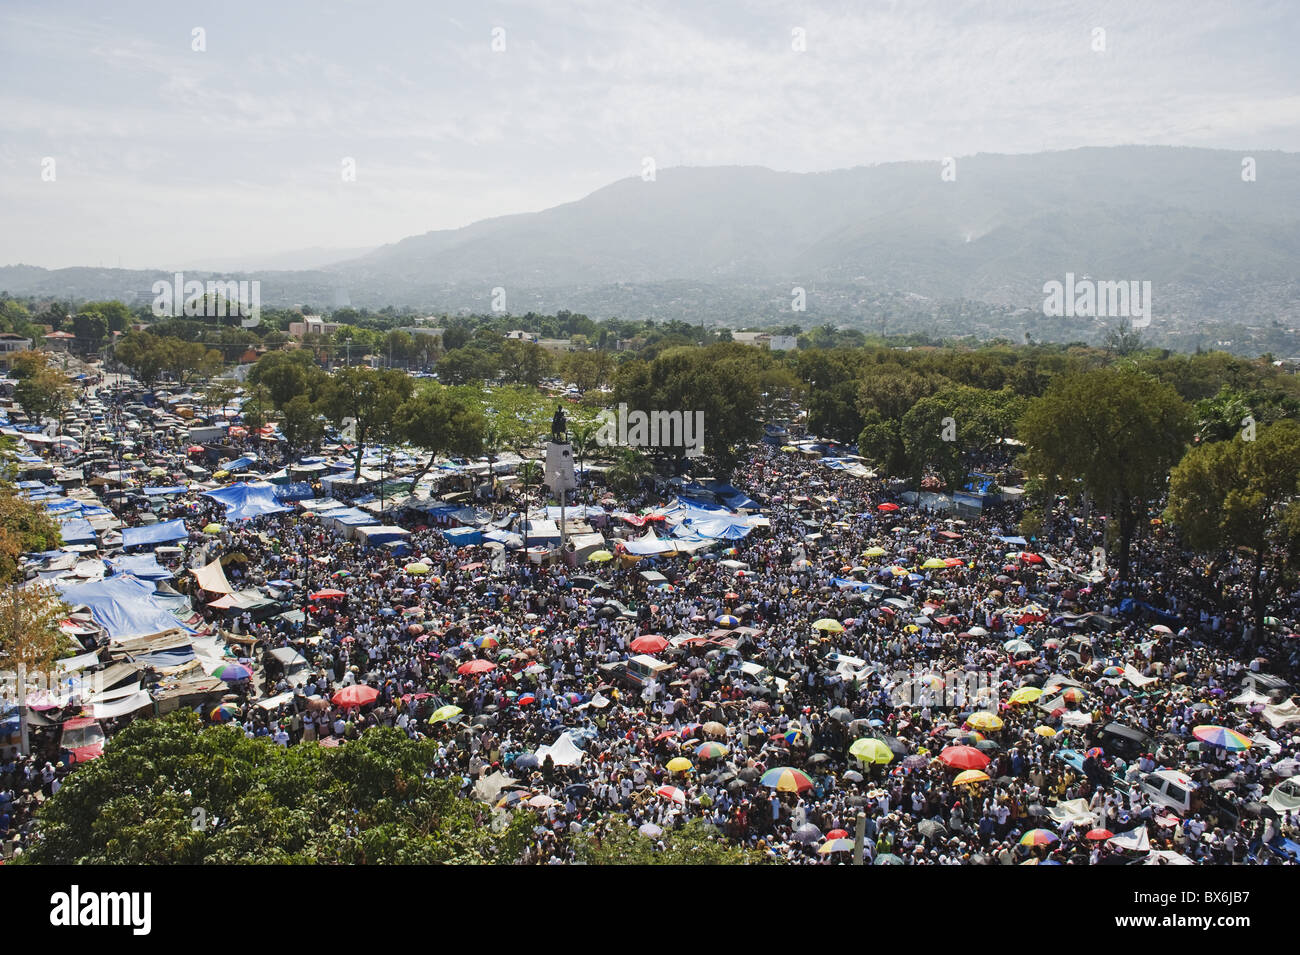 Memorial Day celebration one month after the January 2010 earthquake, Port au Prince, Haiti, West Indies - Stock Image